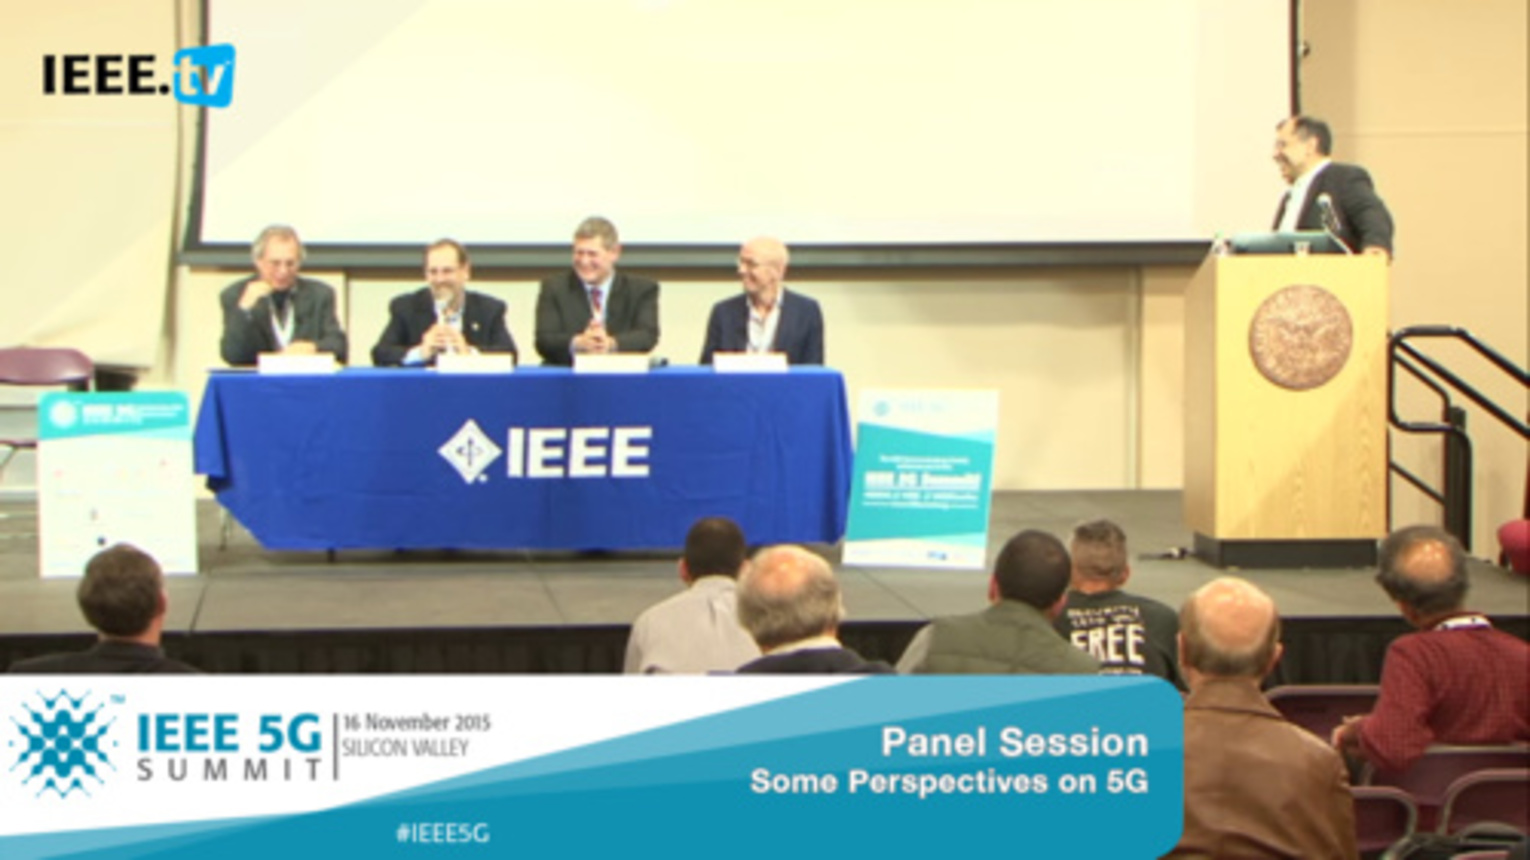 Silicon Valley 5G Summit 2015 - Panel Discussion